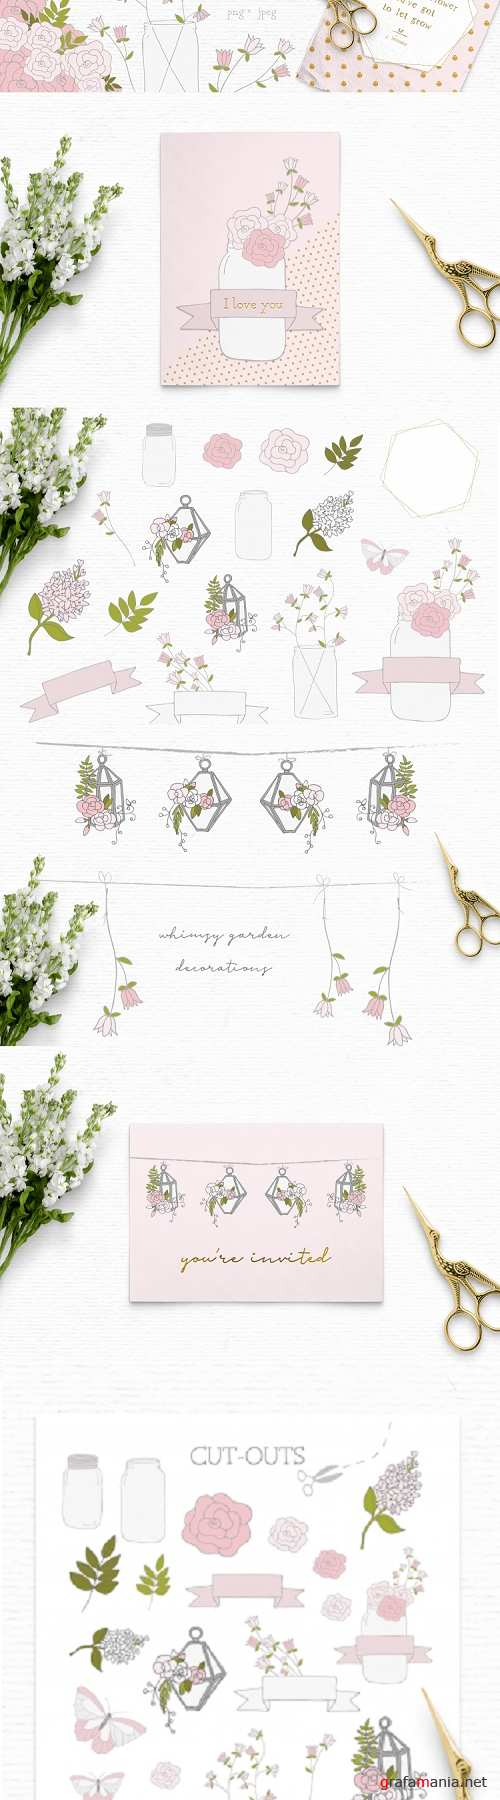 Summer clipart, floral clipart, whimsical clipart, wedding - 288889